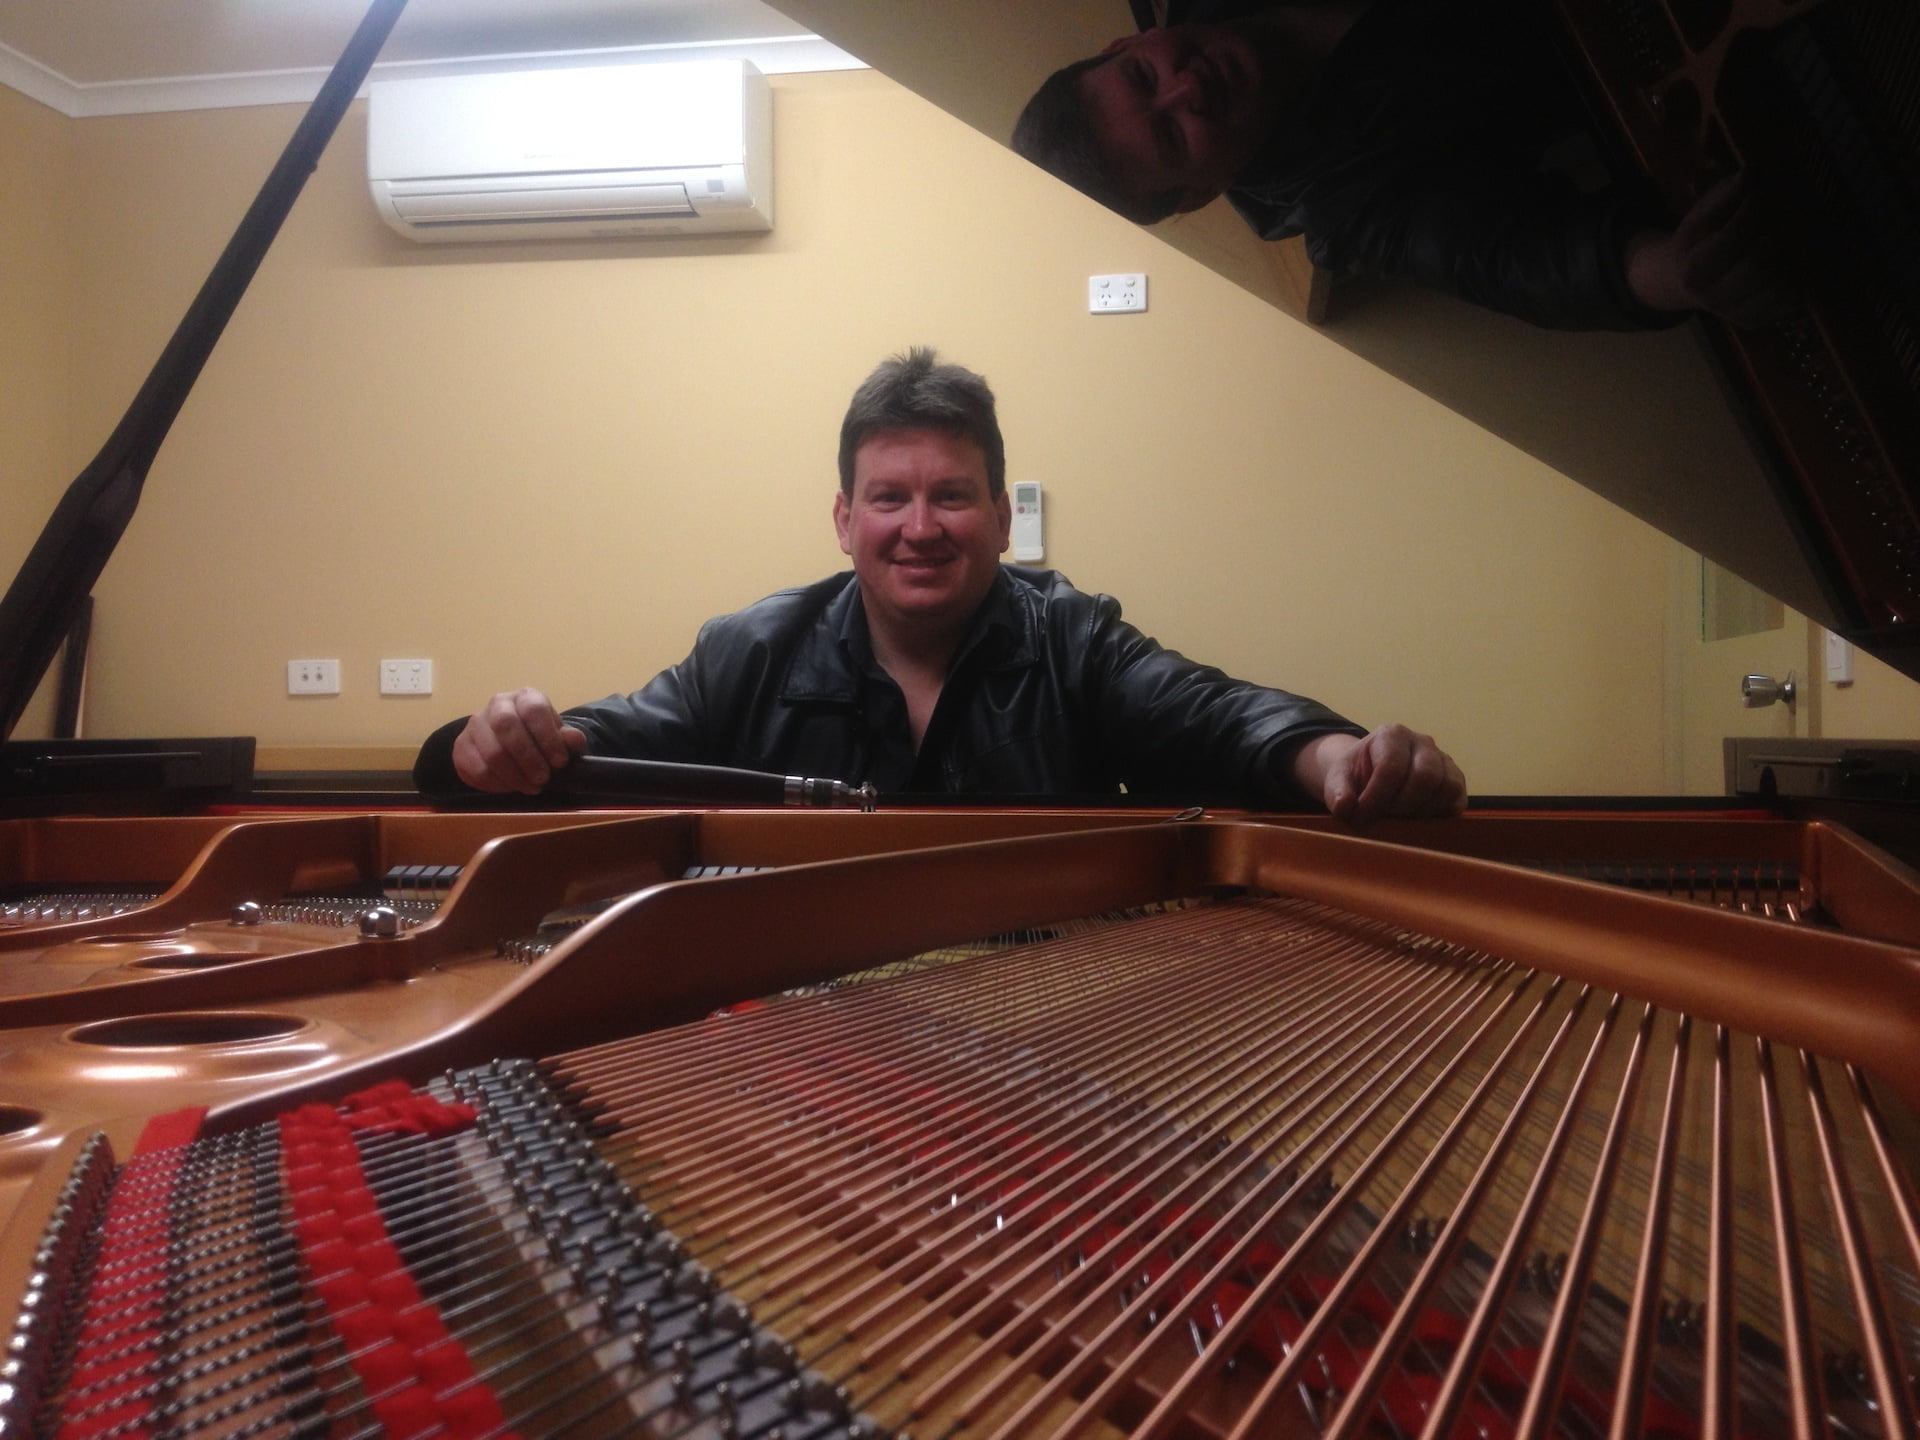 Piano Tuner Melbourne - Precision piano tuning offering services around Doncaster, Carnegie, Boxhill, Glen Waverley, Pakanham, Ringwood